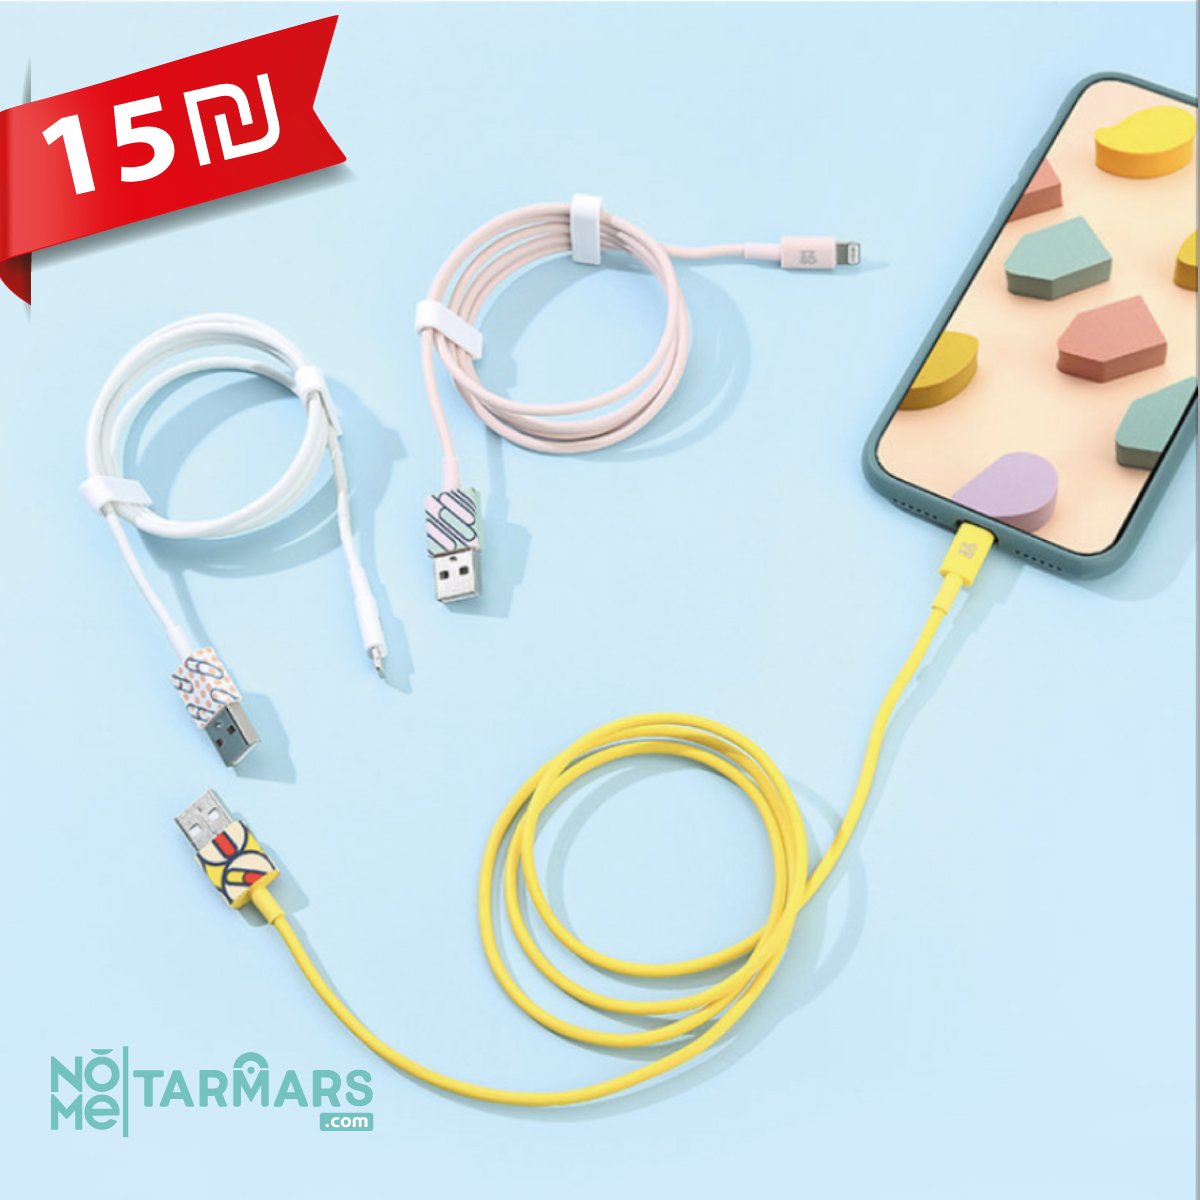 Certified USB charging cable for iPhone